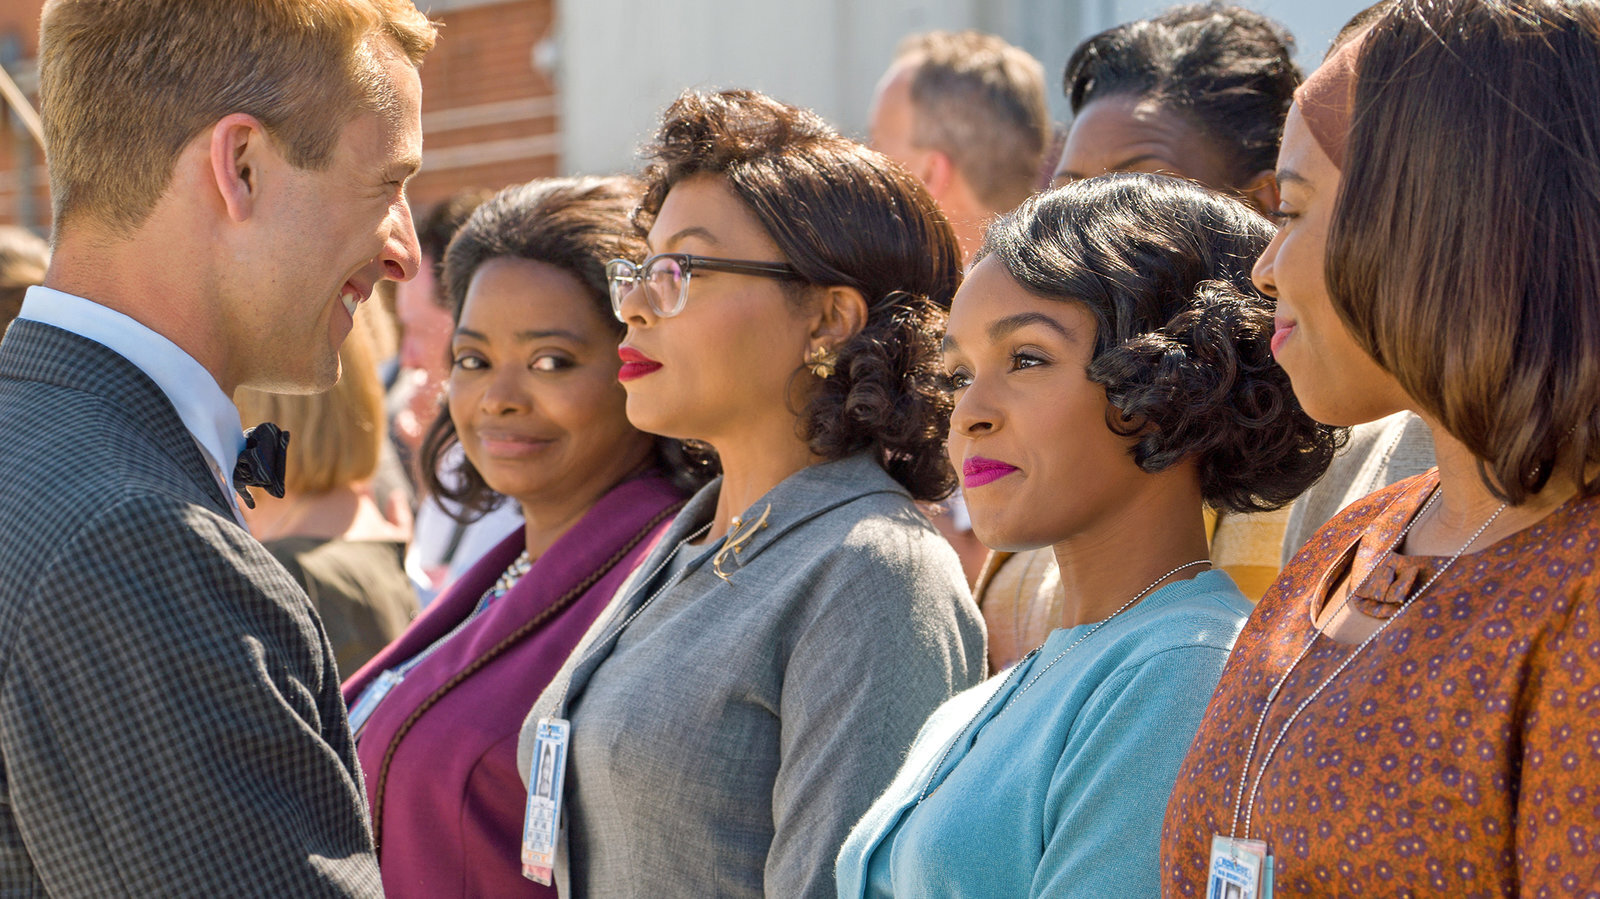 """Based on the true story of three brilliant African-American women at NASA -- Katherine Johnson (Taraji P. Henson), Dorothy Vaughan (Octavia Spencer) and Mary Jackson (Janelle Monáe)- this film effectively conveys the systemic racism and sexism prevalent in 1960s American society, in which racial segregation and workplace sexism were widely accepted facts of life. These women played instrumental roles in the successful launch of astronaut John Glenn into space, yet until recently few of these women were acknowledged in academic publications. Whilst these women rallied against such injustices, this film is a vital reminder of the poisonous normalcy of white supremacy and the prejudice of racism that remains a contested issue to this day. On November 8th 2019 it wassigned into lawthe """"Hidden Figures Congressional Gold Medal Act,"""" which provides for the award to mathematician Katherine Johnson and engineer Christine Darden, as well as the posthumous award to engineer Mary Jackson and computer programmer Dorothy Vaughan."""